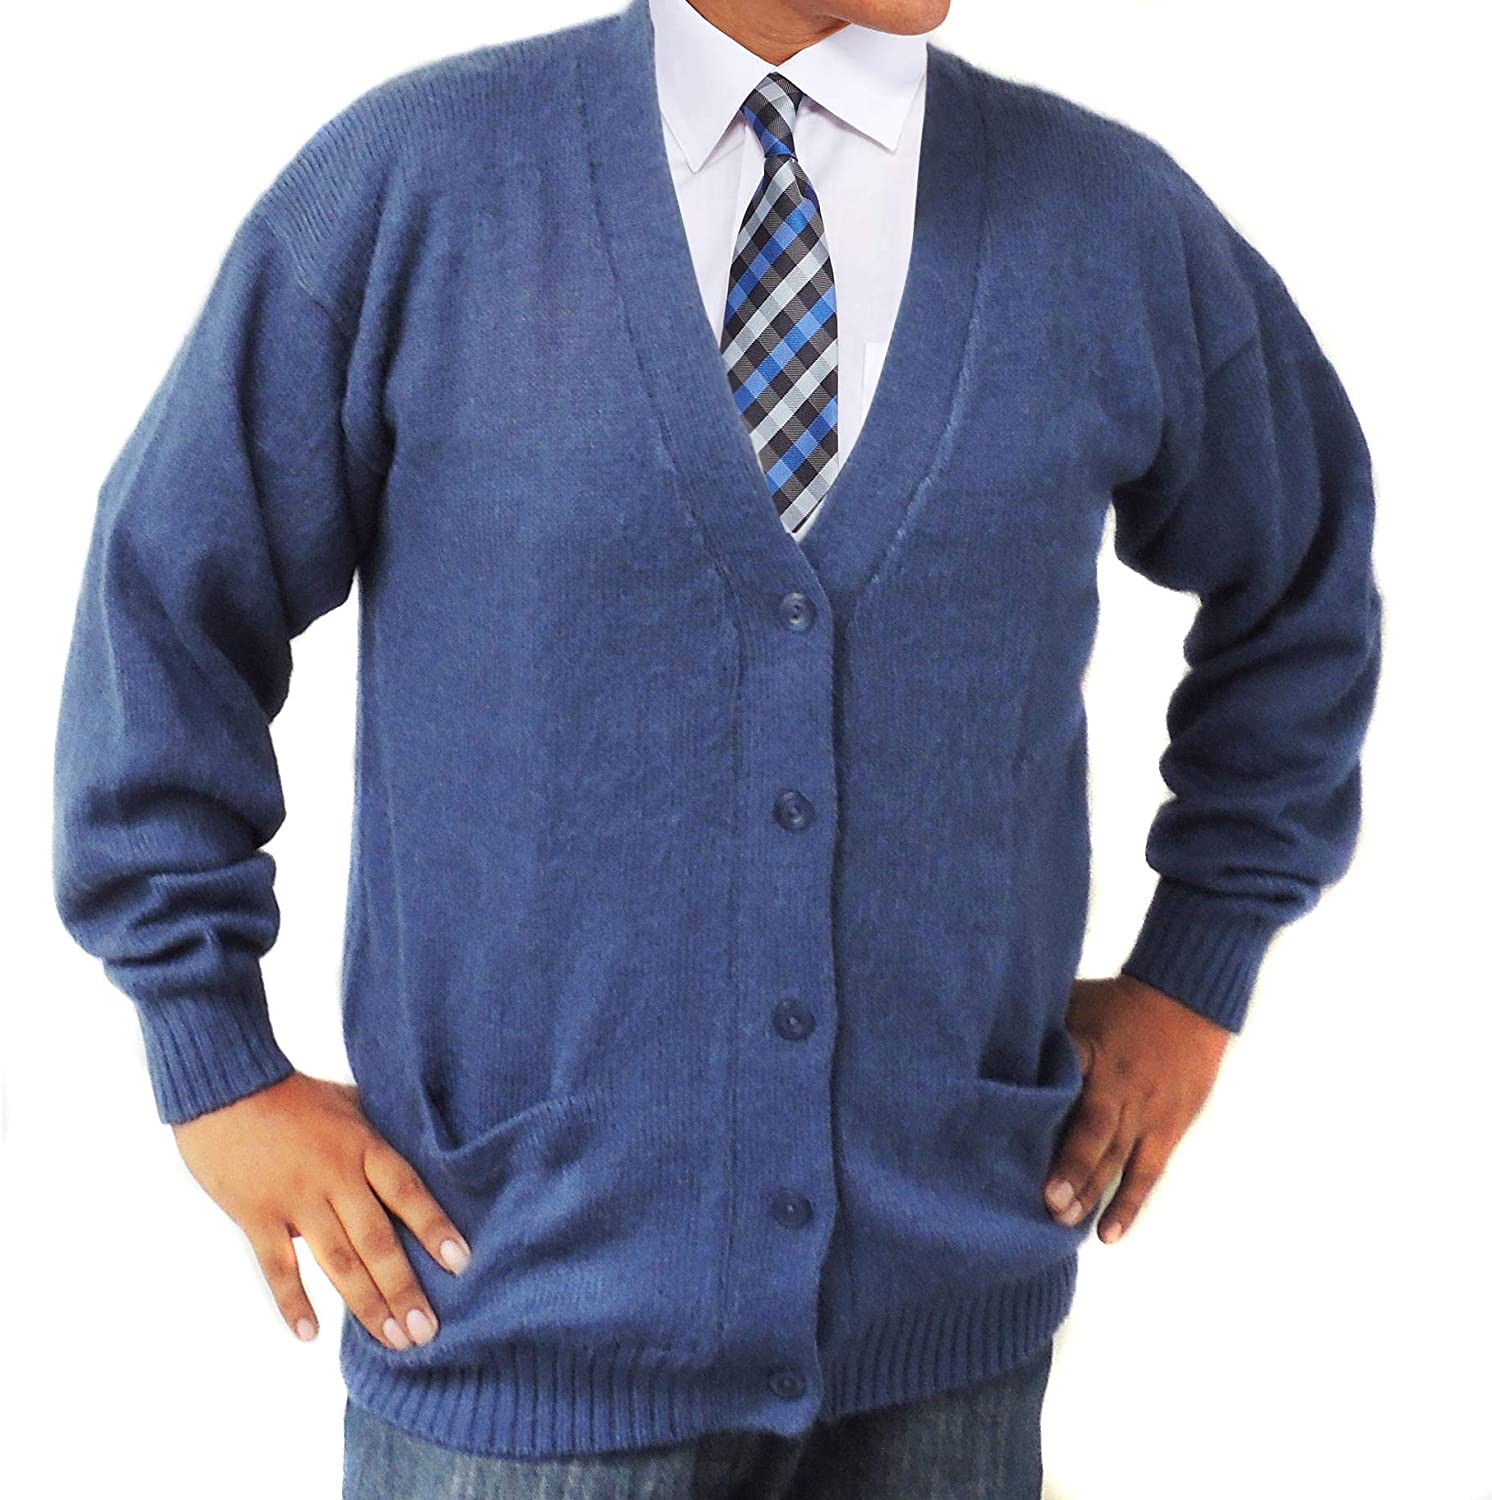 ALPACA CARDIGAN GOLF SWEATER JERSEY V neck buttons and Pockets made in PERU STEEL